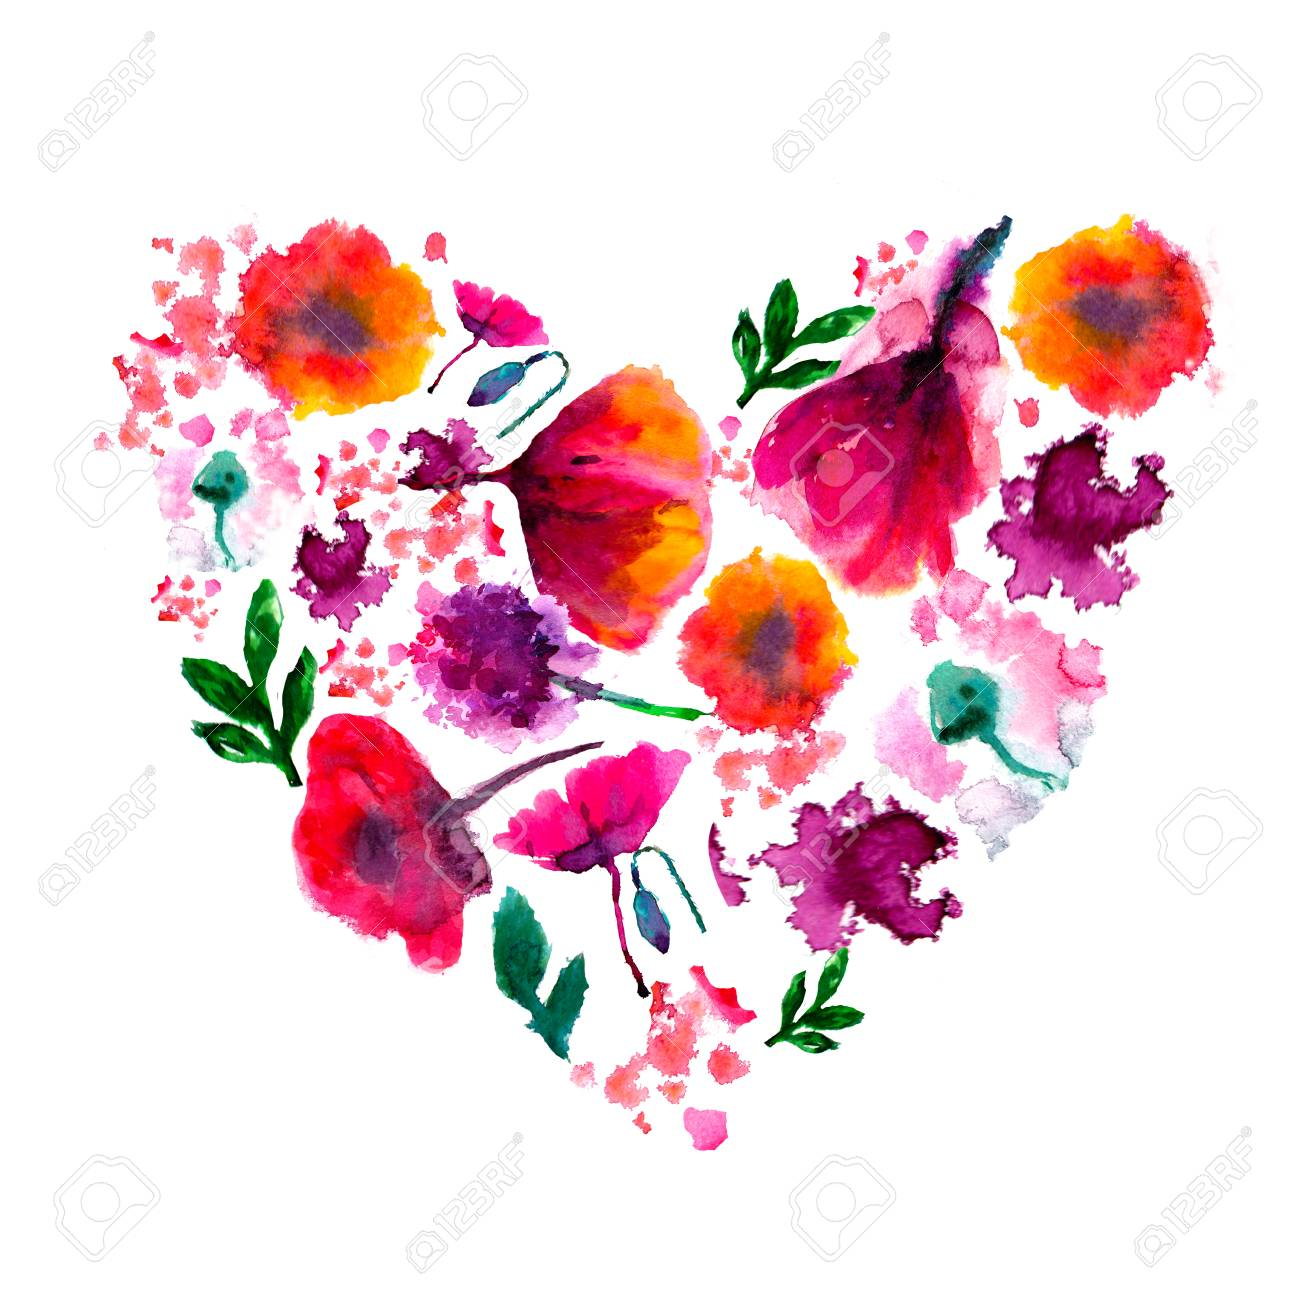 Painted watercolor flower heart painted heart watercolor heart painted watercolor flower heart painted heart watercolor heart made of flowers perfect valentines mightylinksfo